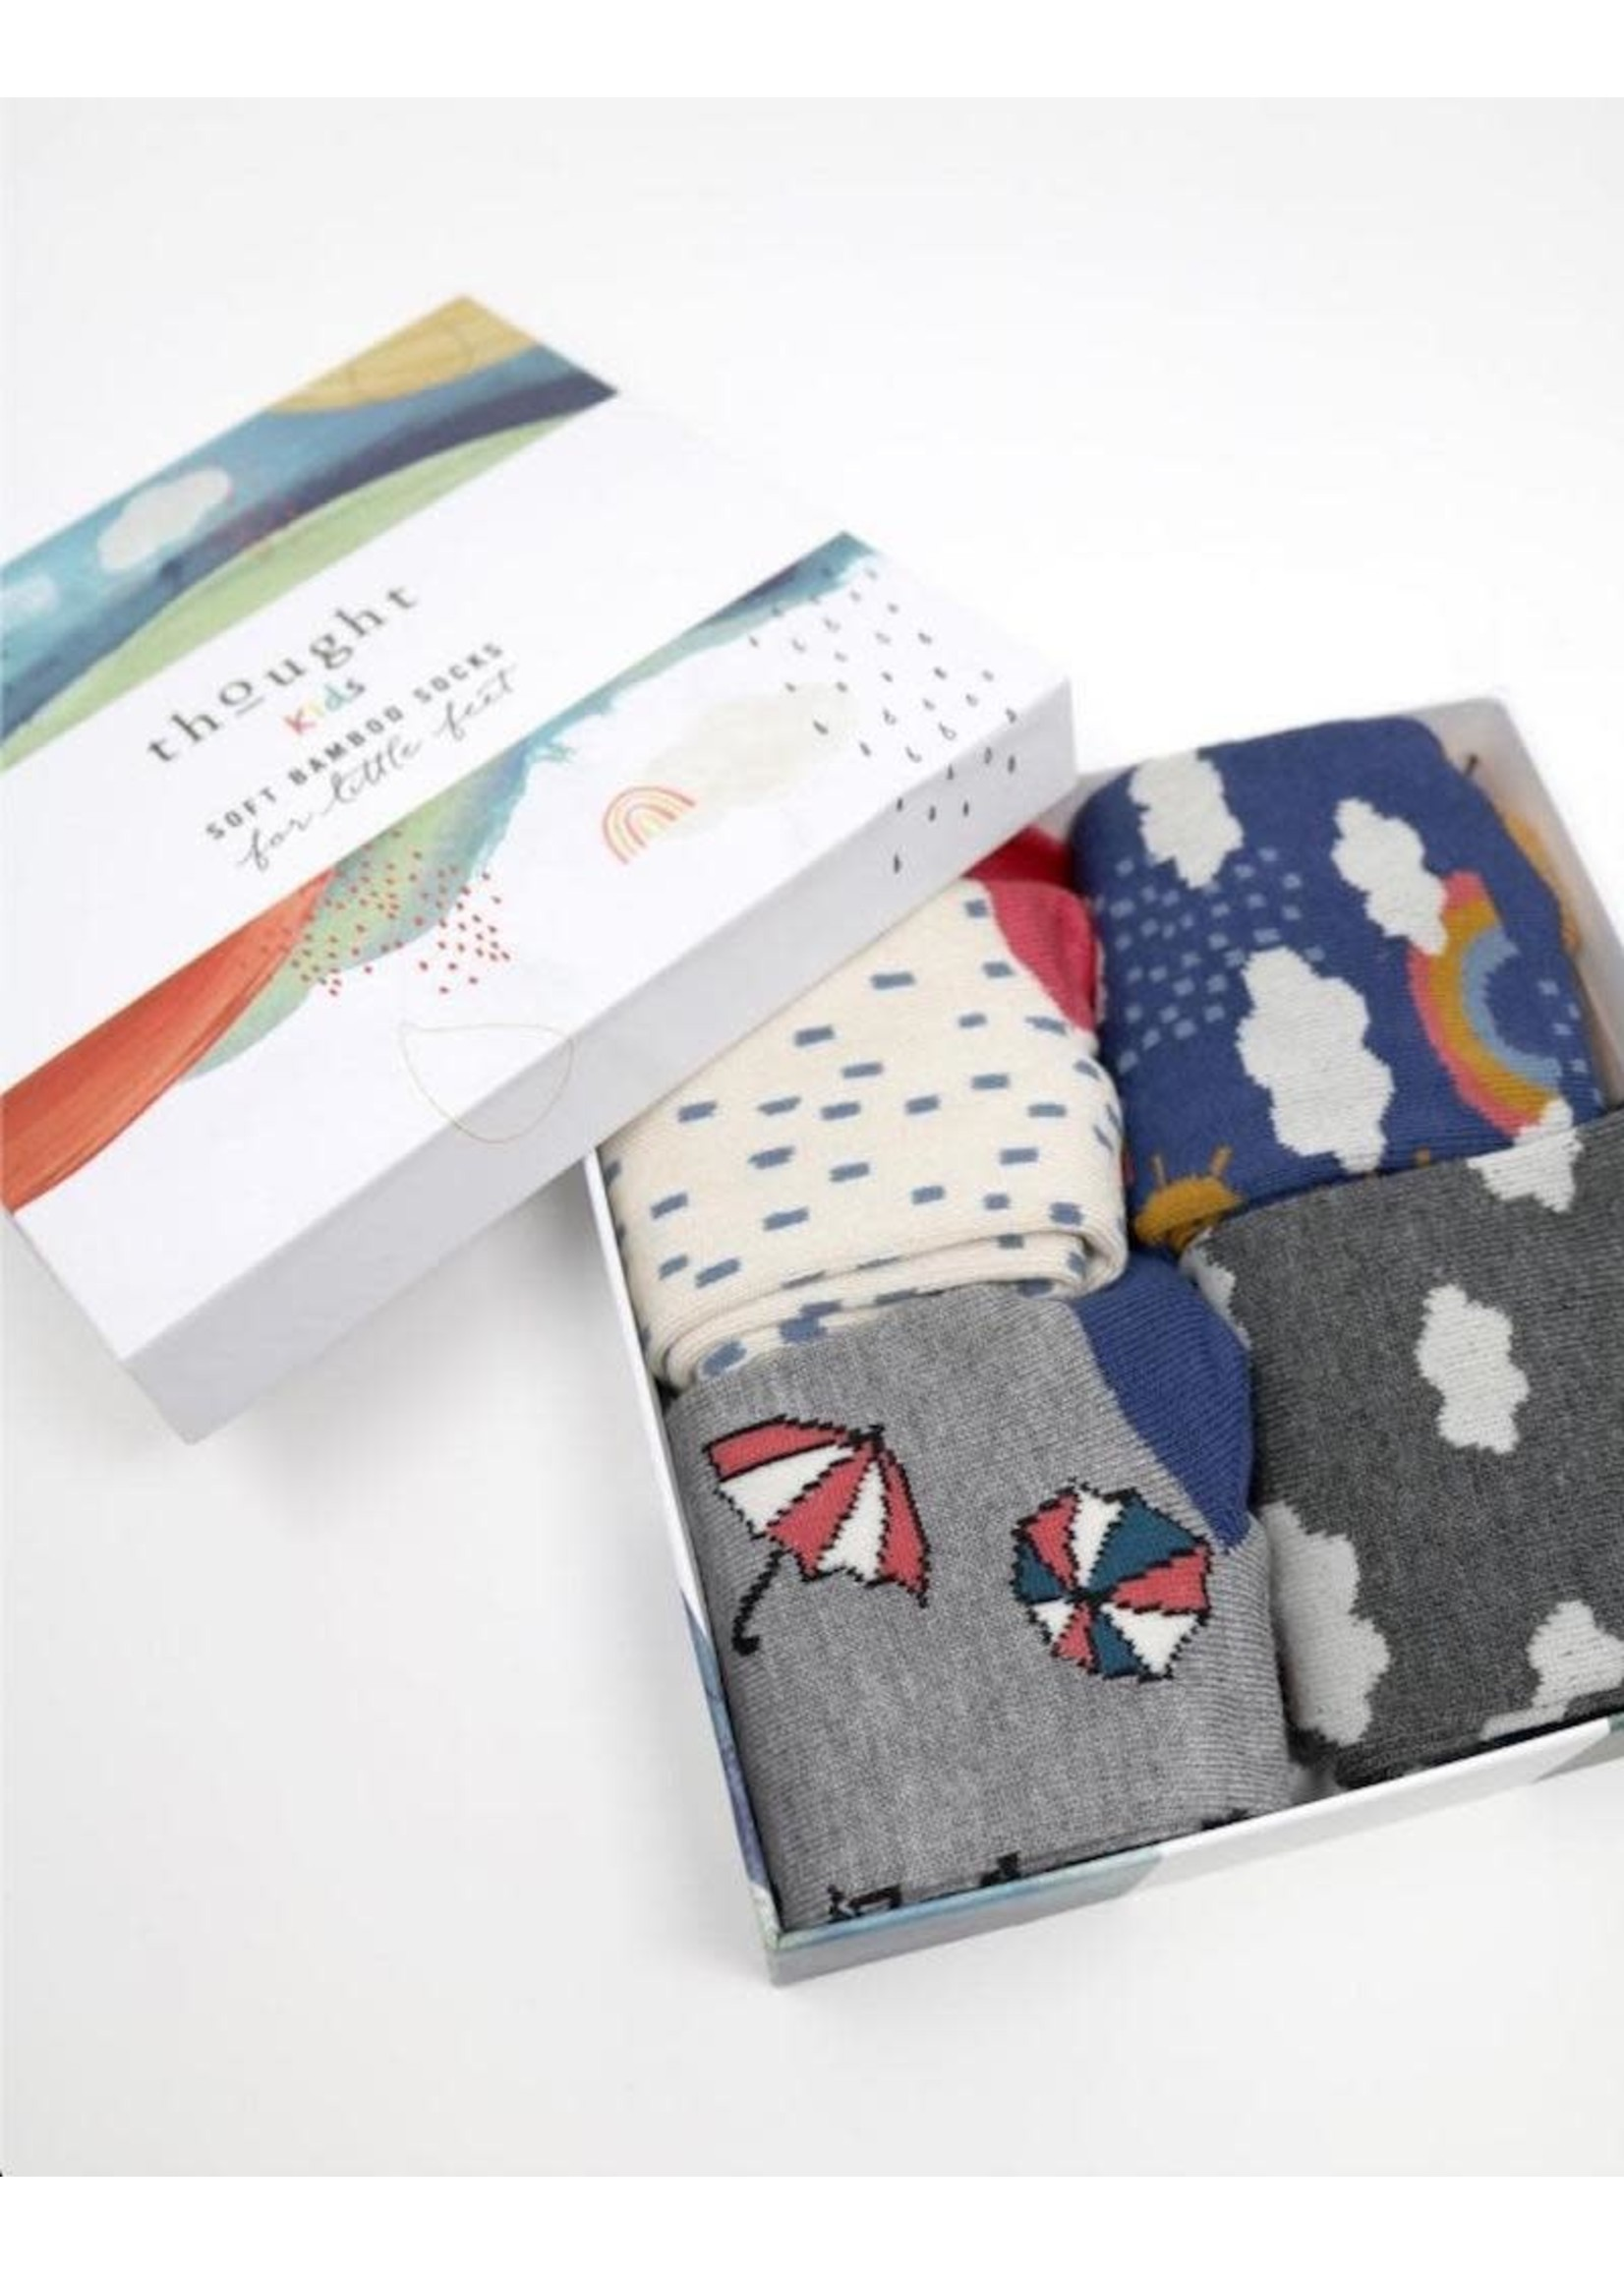 Thought Socks Thougth Kids, Overcast Bamboo Kids Weather Socks Gift 4 pack